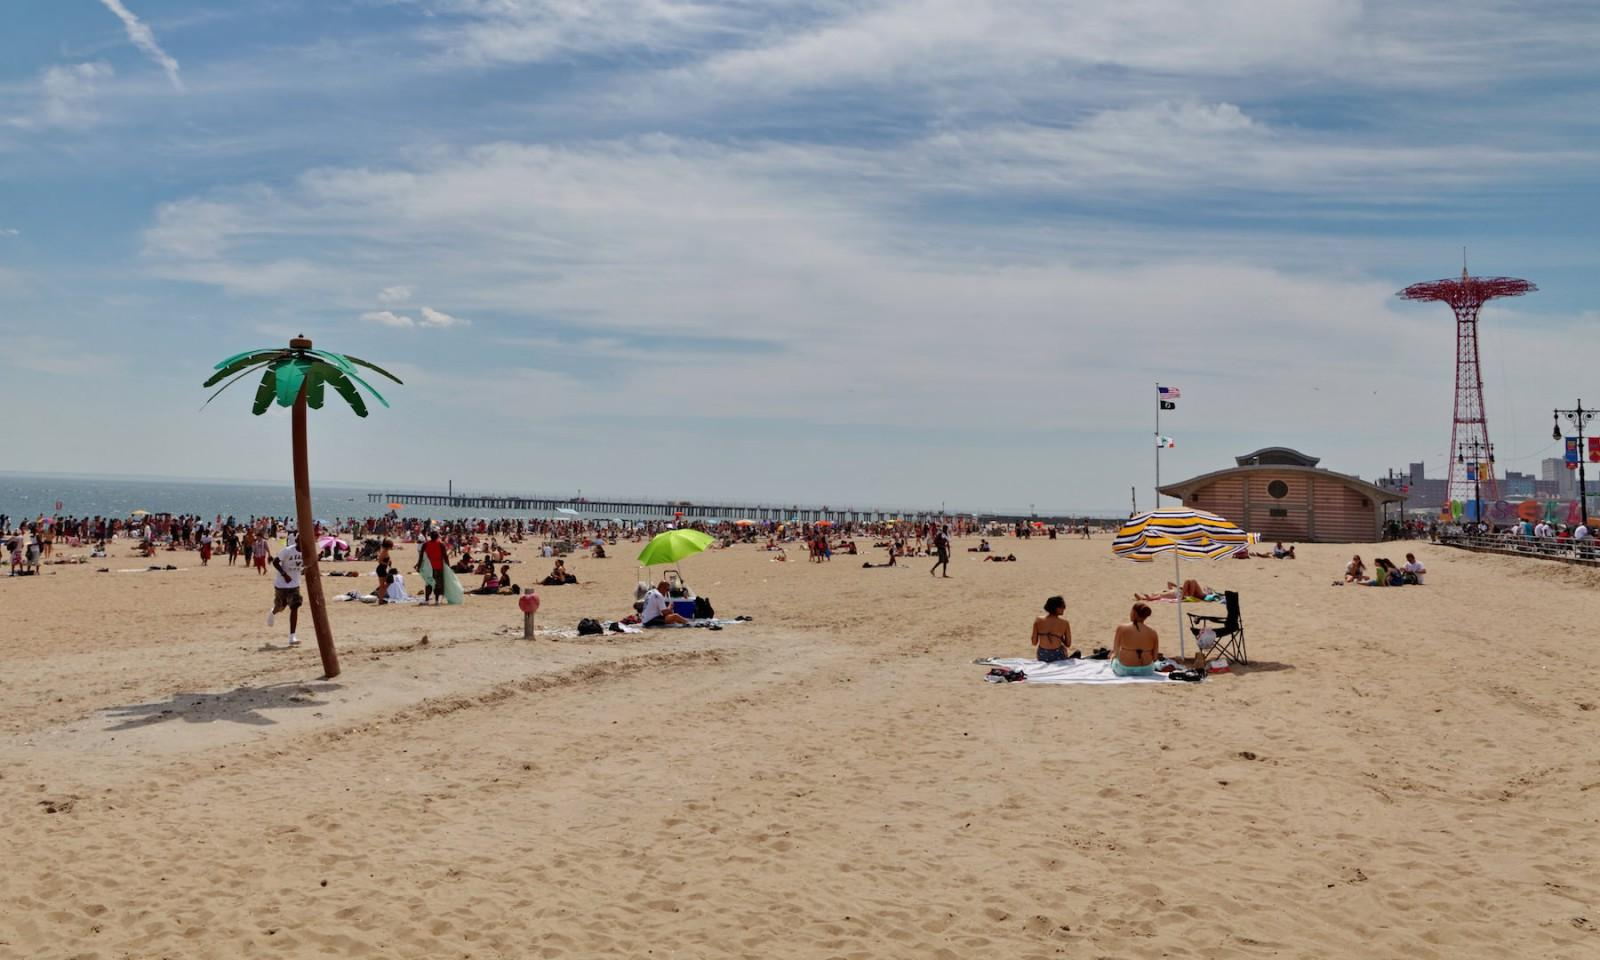 Playa de Nueva York: Brighton Beach